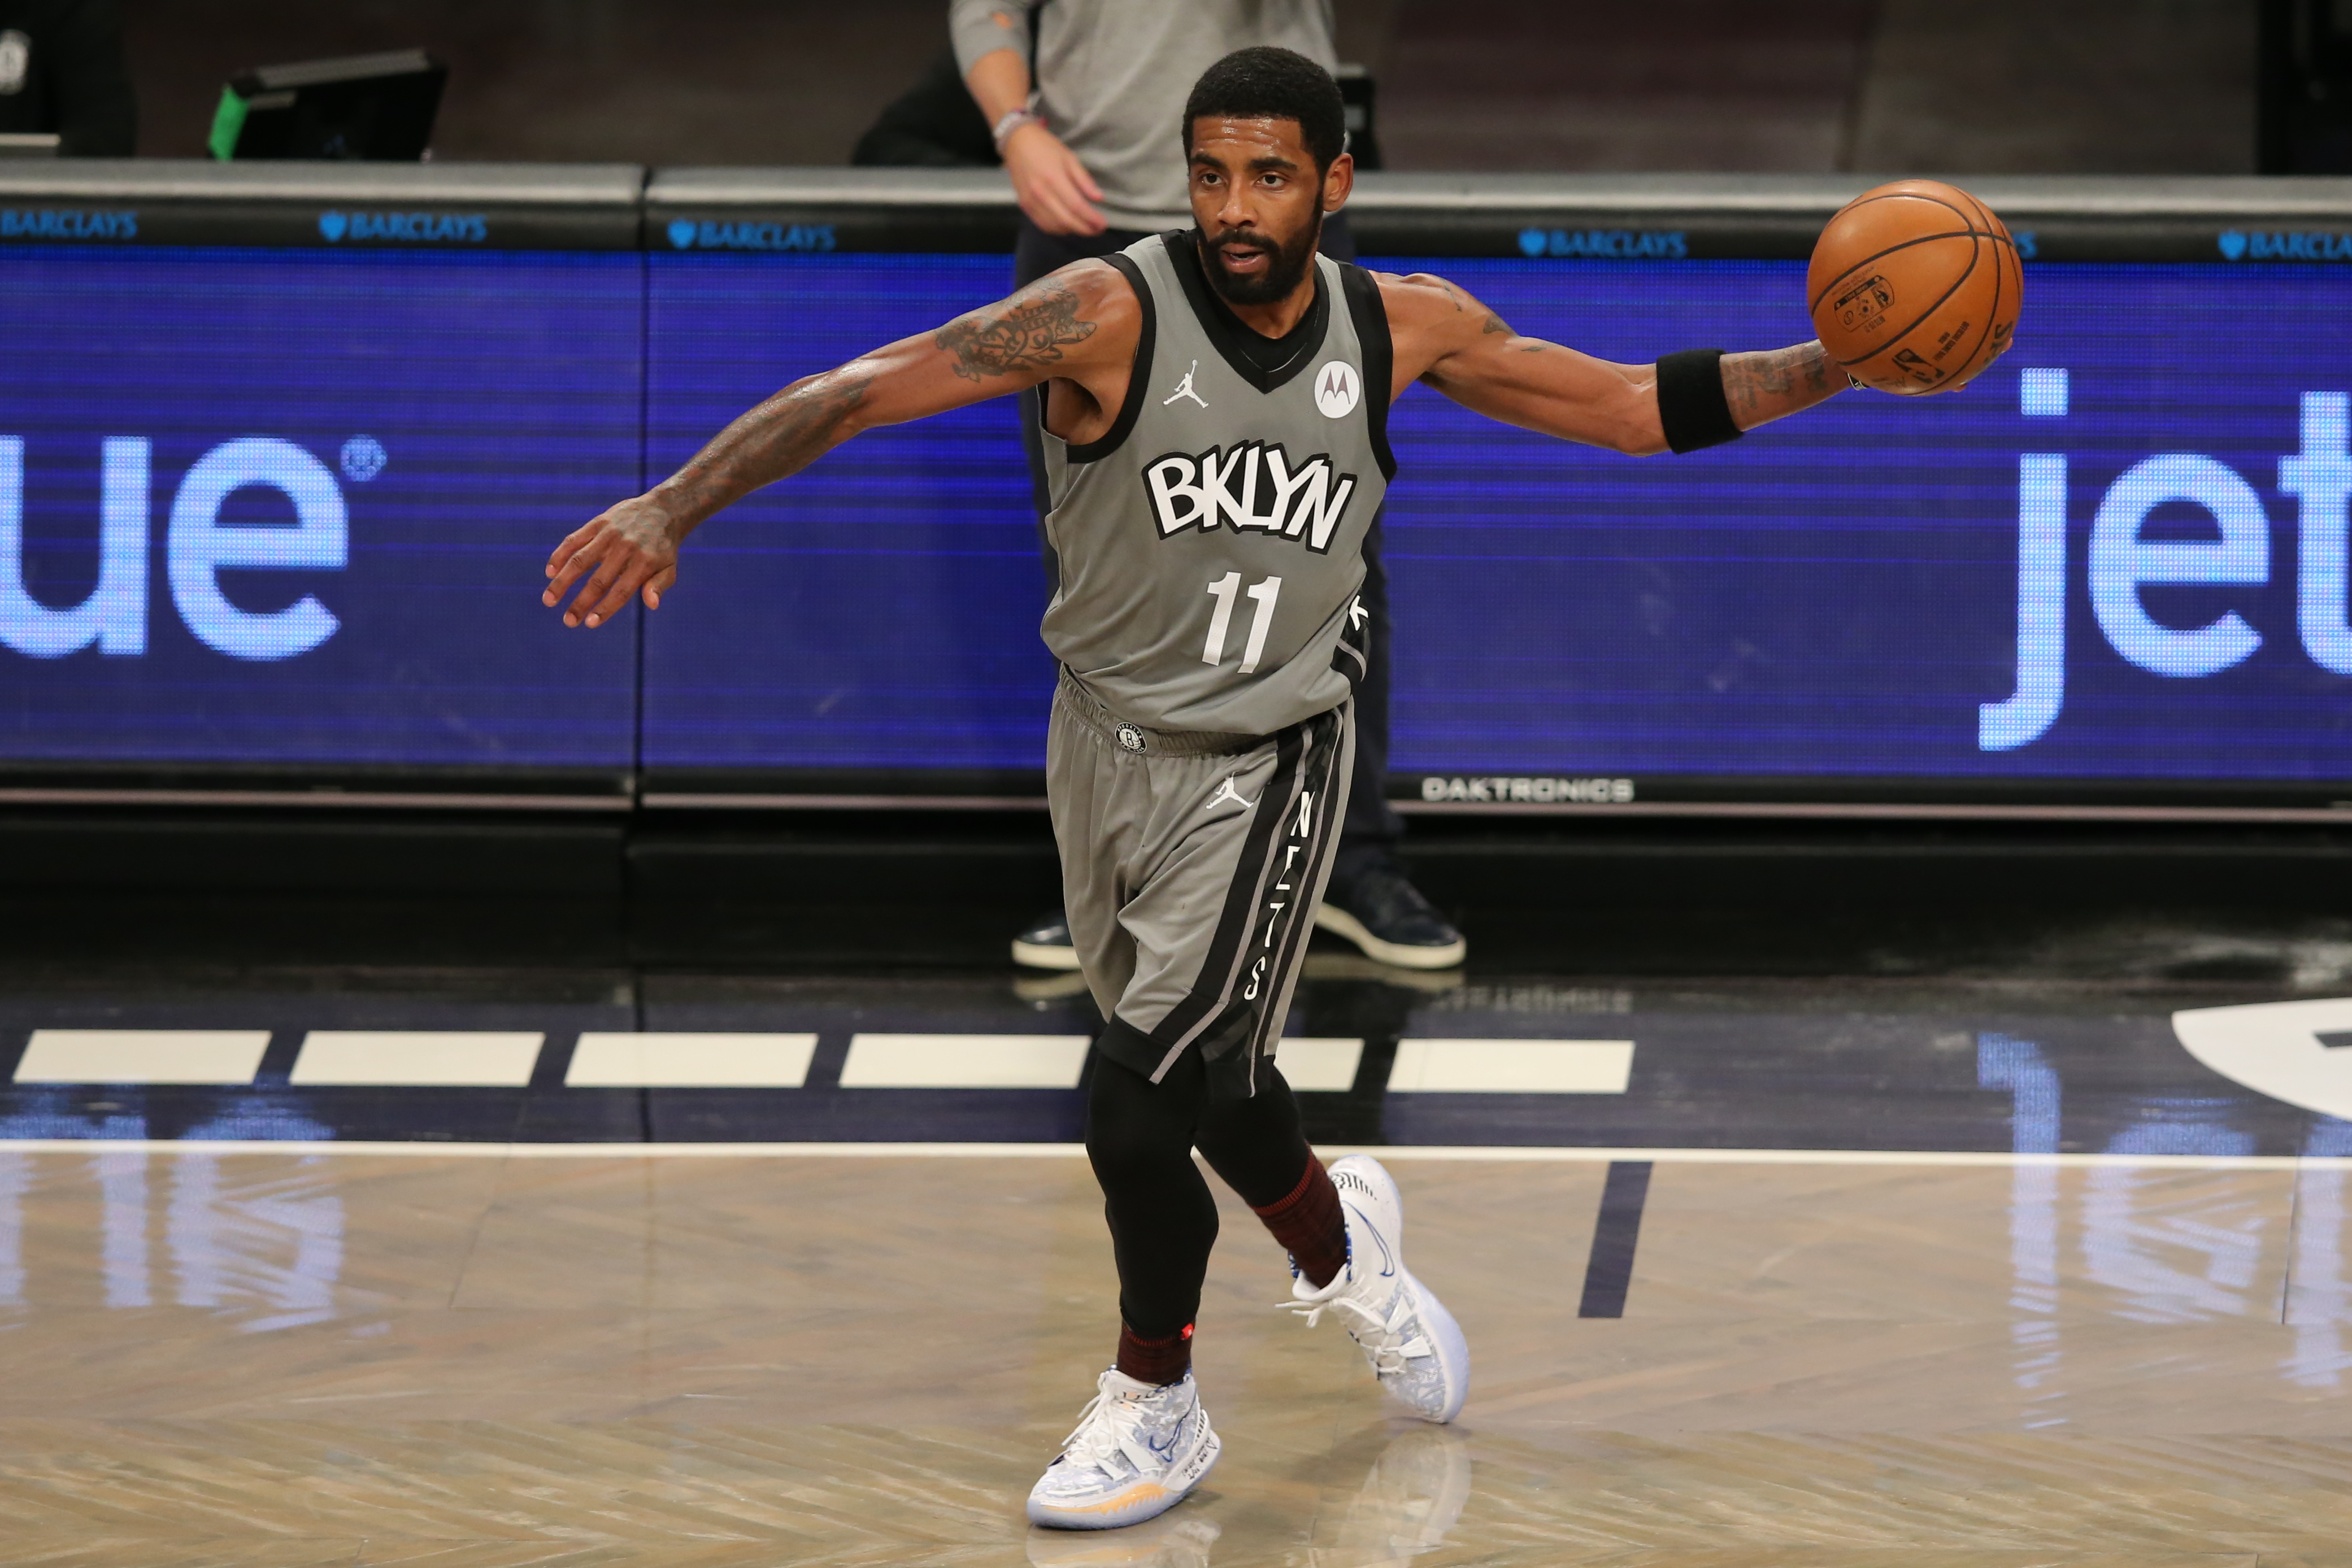 Jan 3, 2021; Brooklyn, New York, USA; Brooklyn Nets point guard Kyrie Irving (11) passes the ball against the Washington Wizards during the second quarter at Barclays Center.